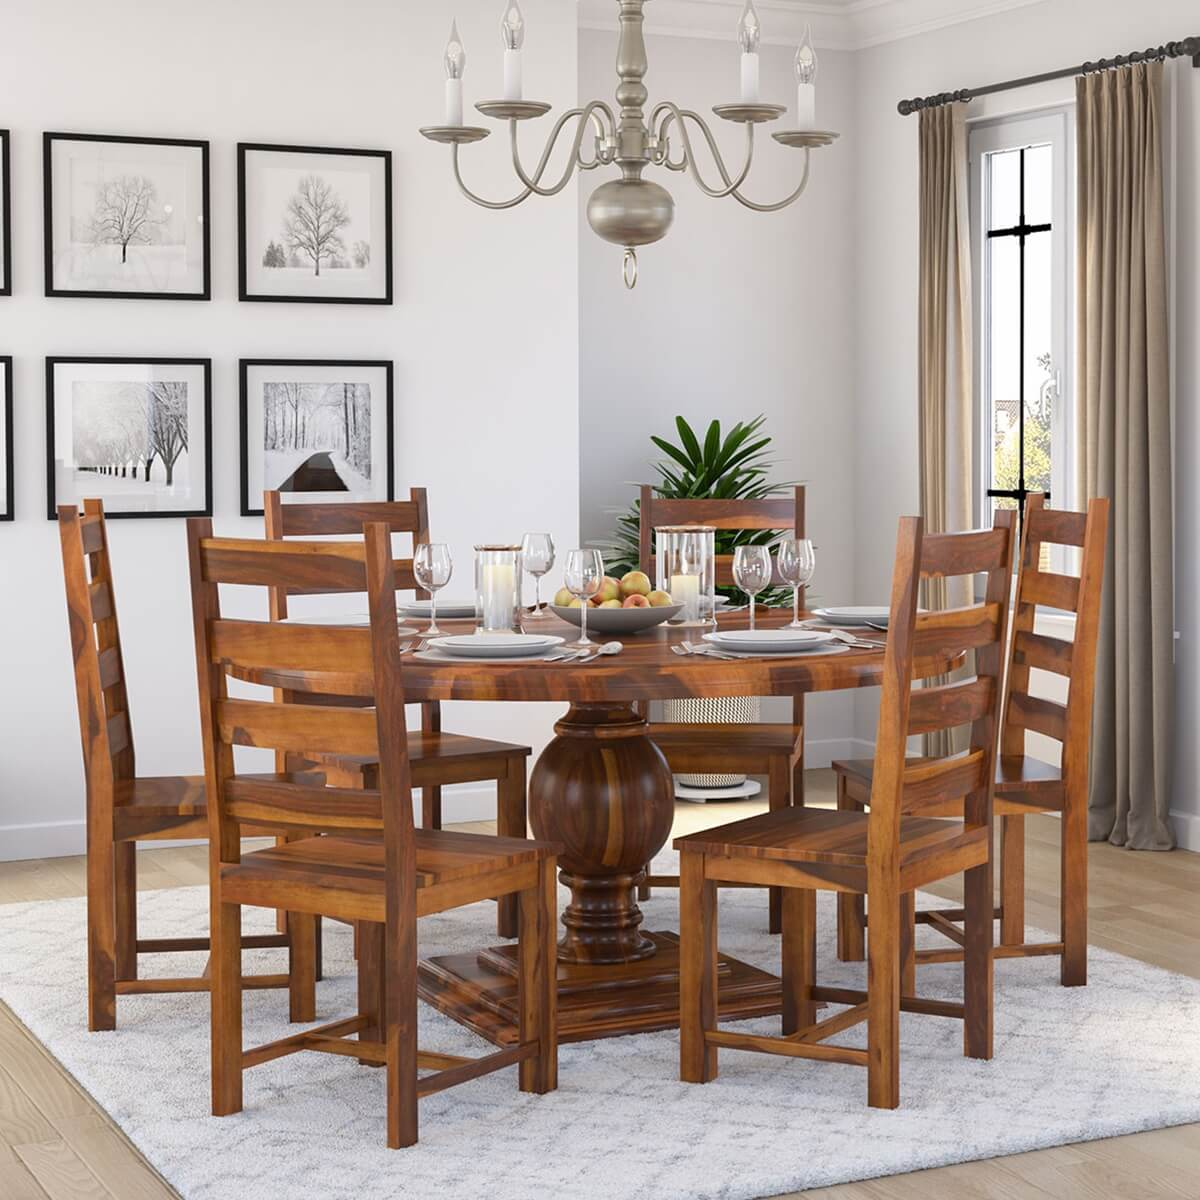 Solid Wood Dining Table Chairs: Cloverdale Solid Wood Round Dining Table With 6 Chairs Set